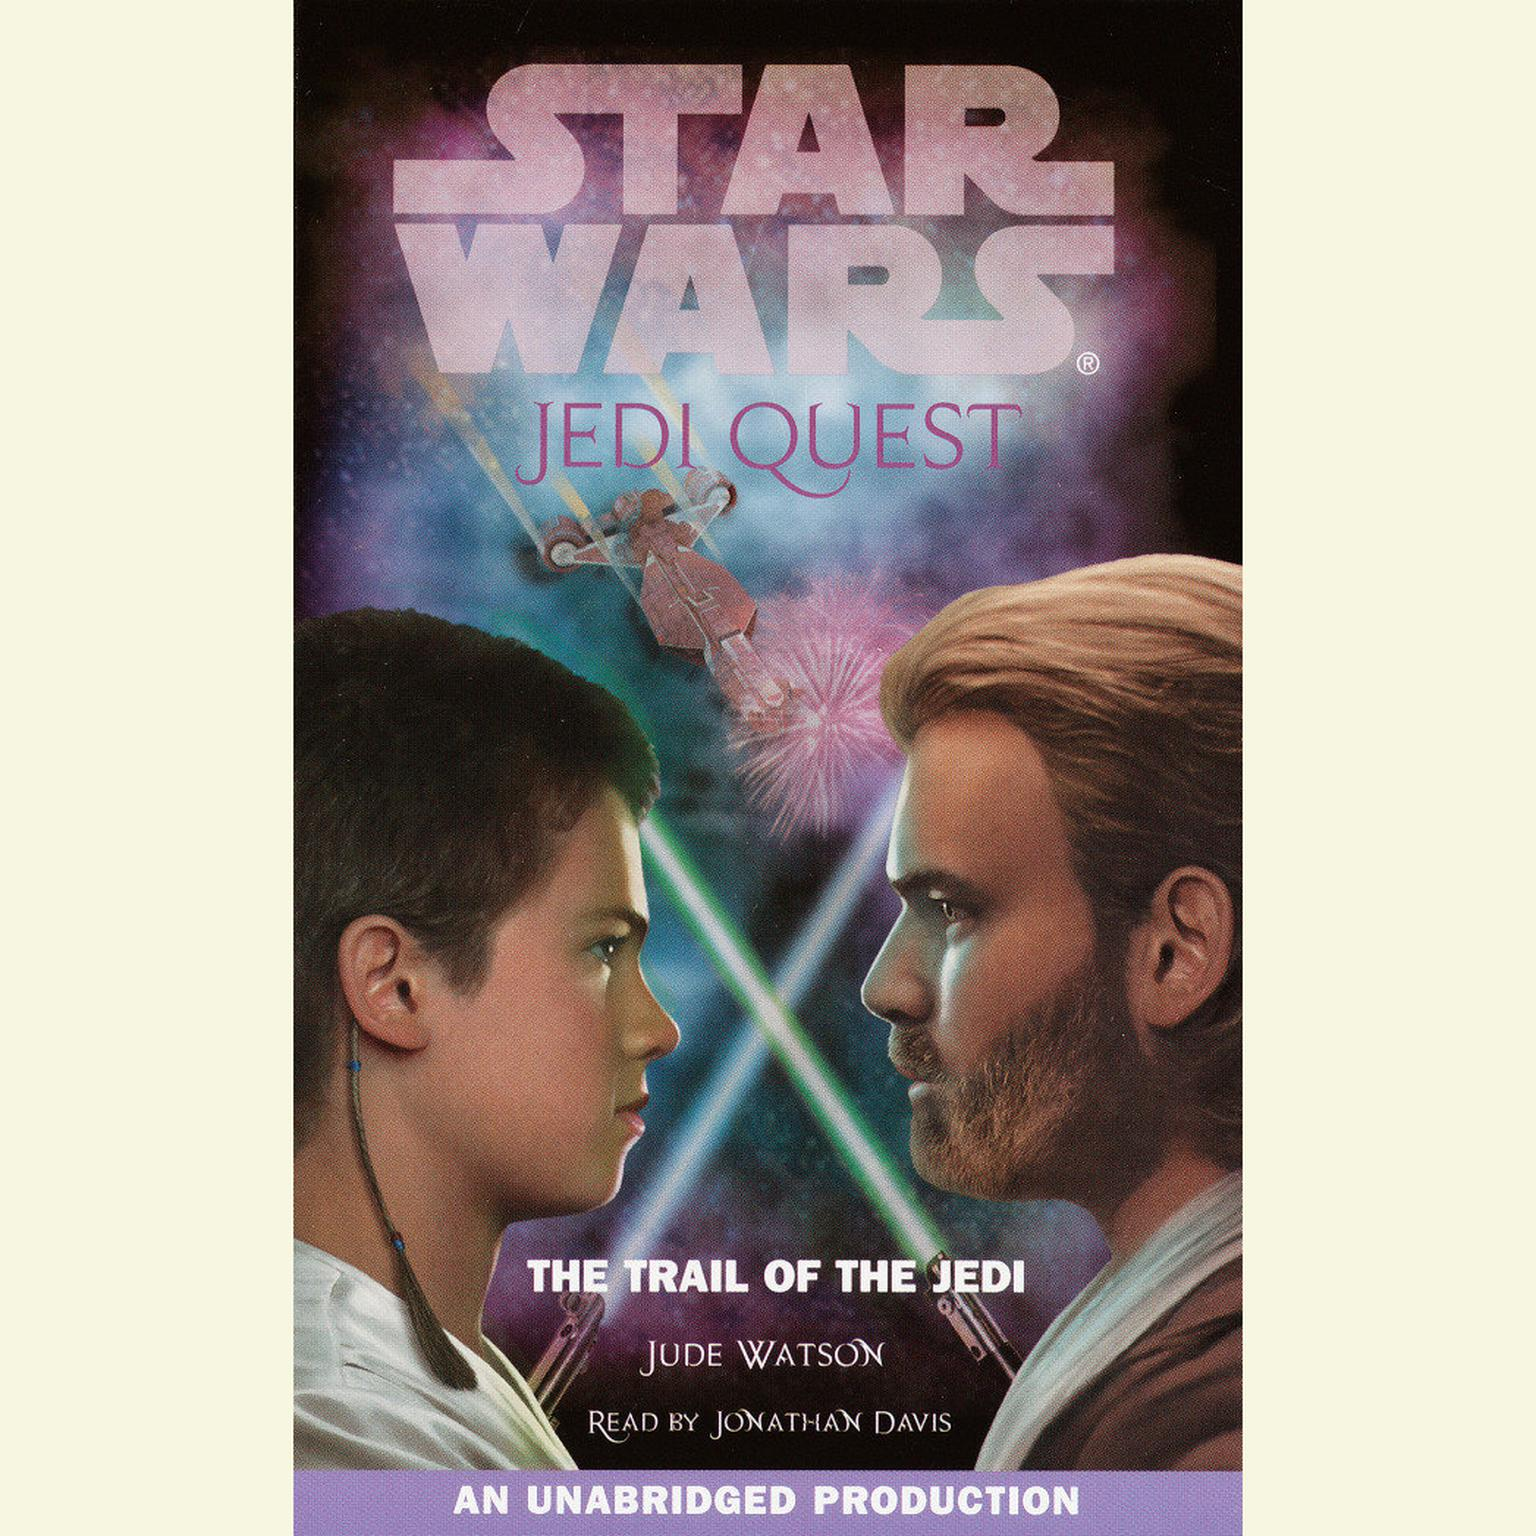 Star Wars: Jedi Quest #2: The Trail of the Jedi Audiobook, by Jude Watson